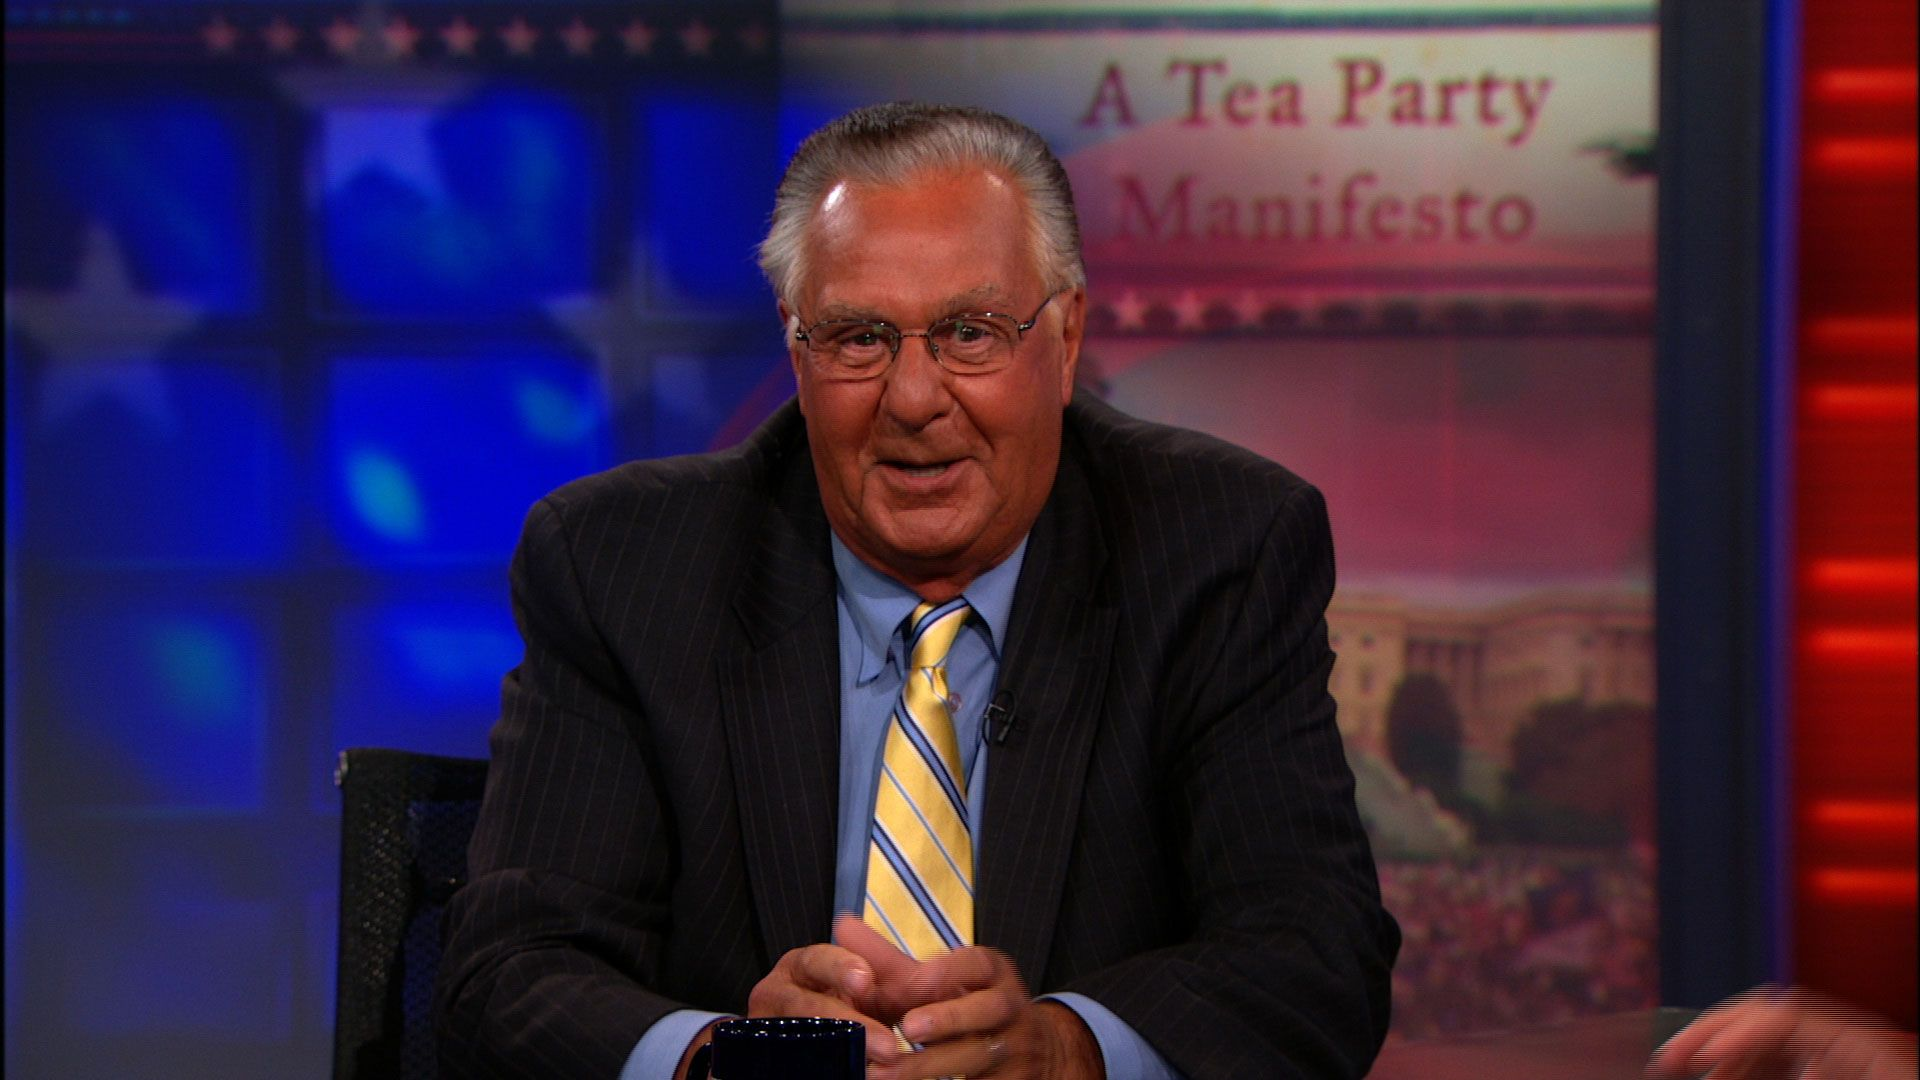 Dick armey and tea party founder